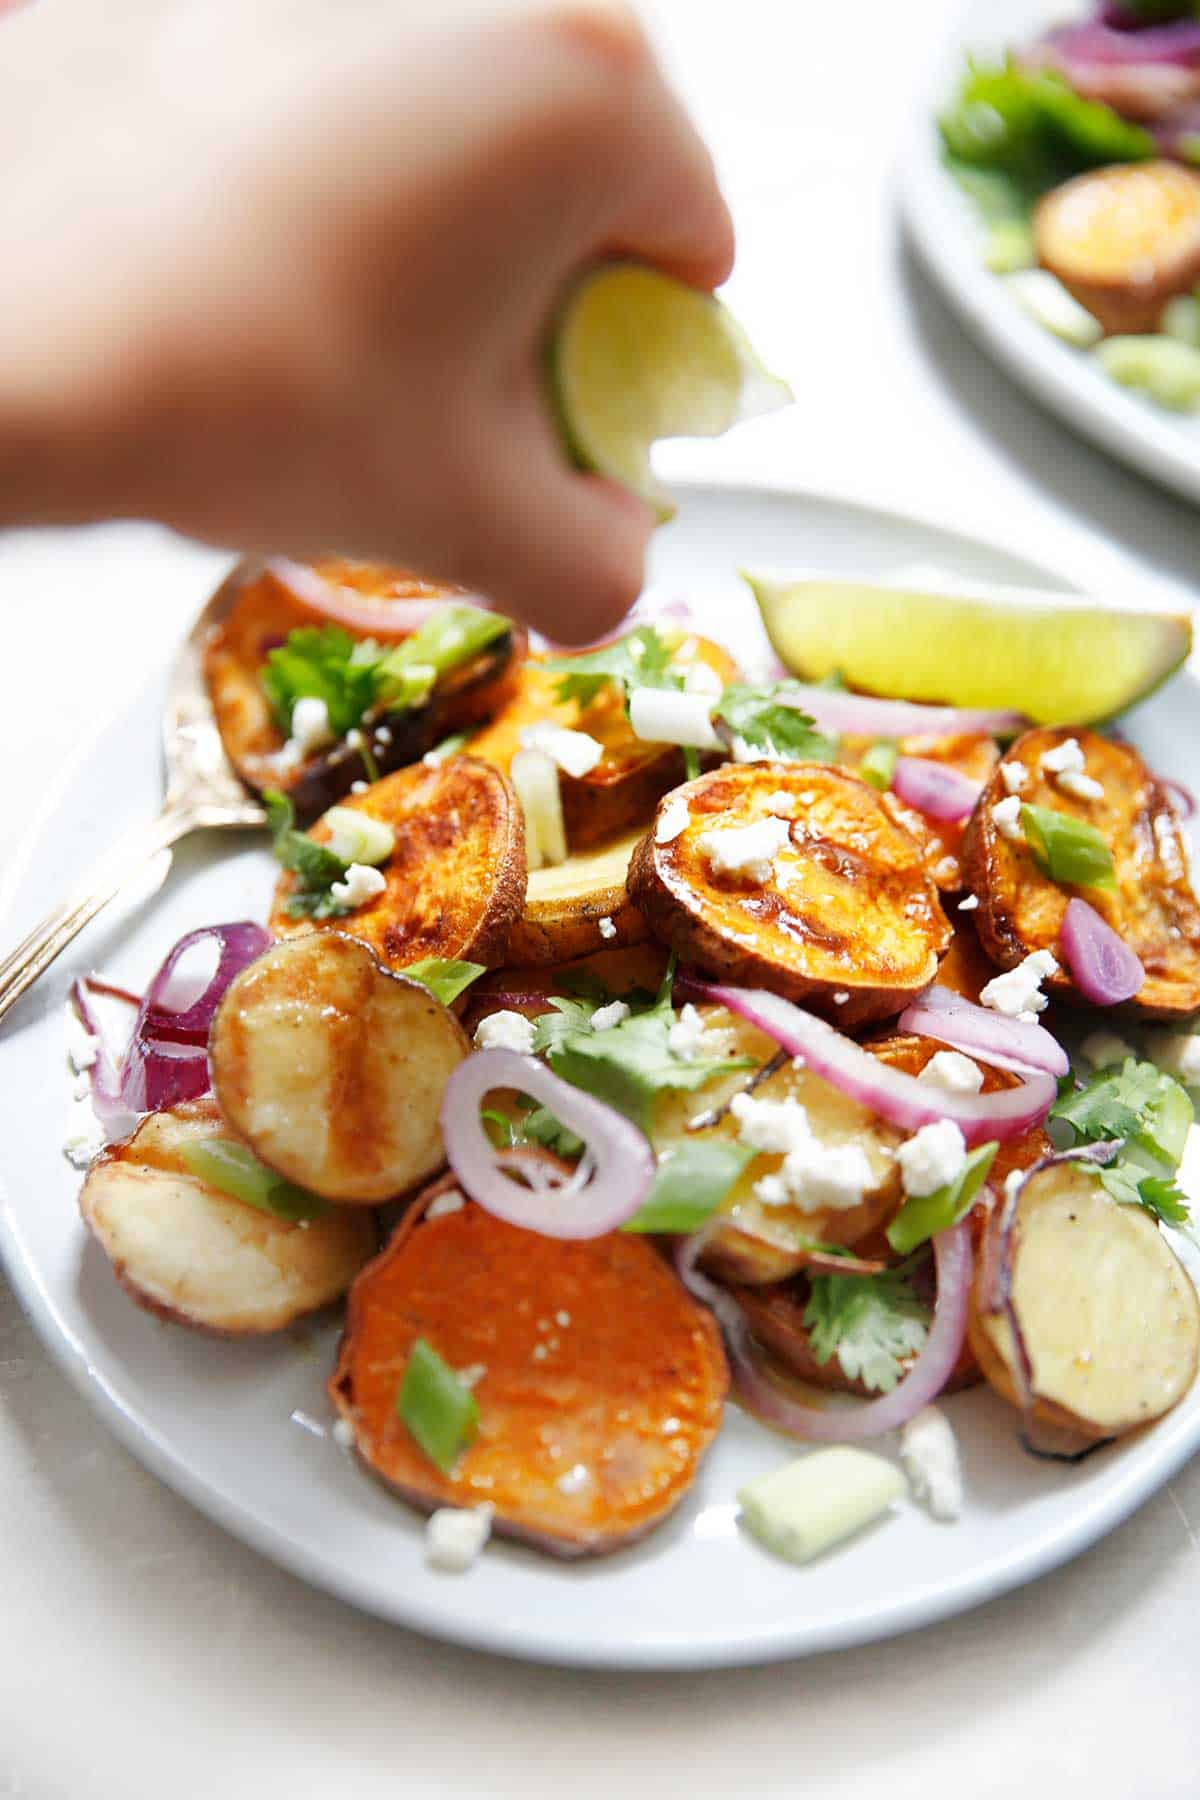 Grilled Sweet Potato Salad with Honey Mustard Vinaigrette